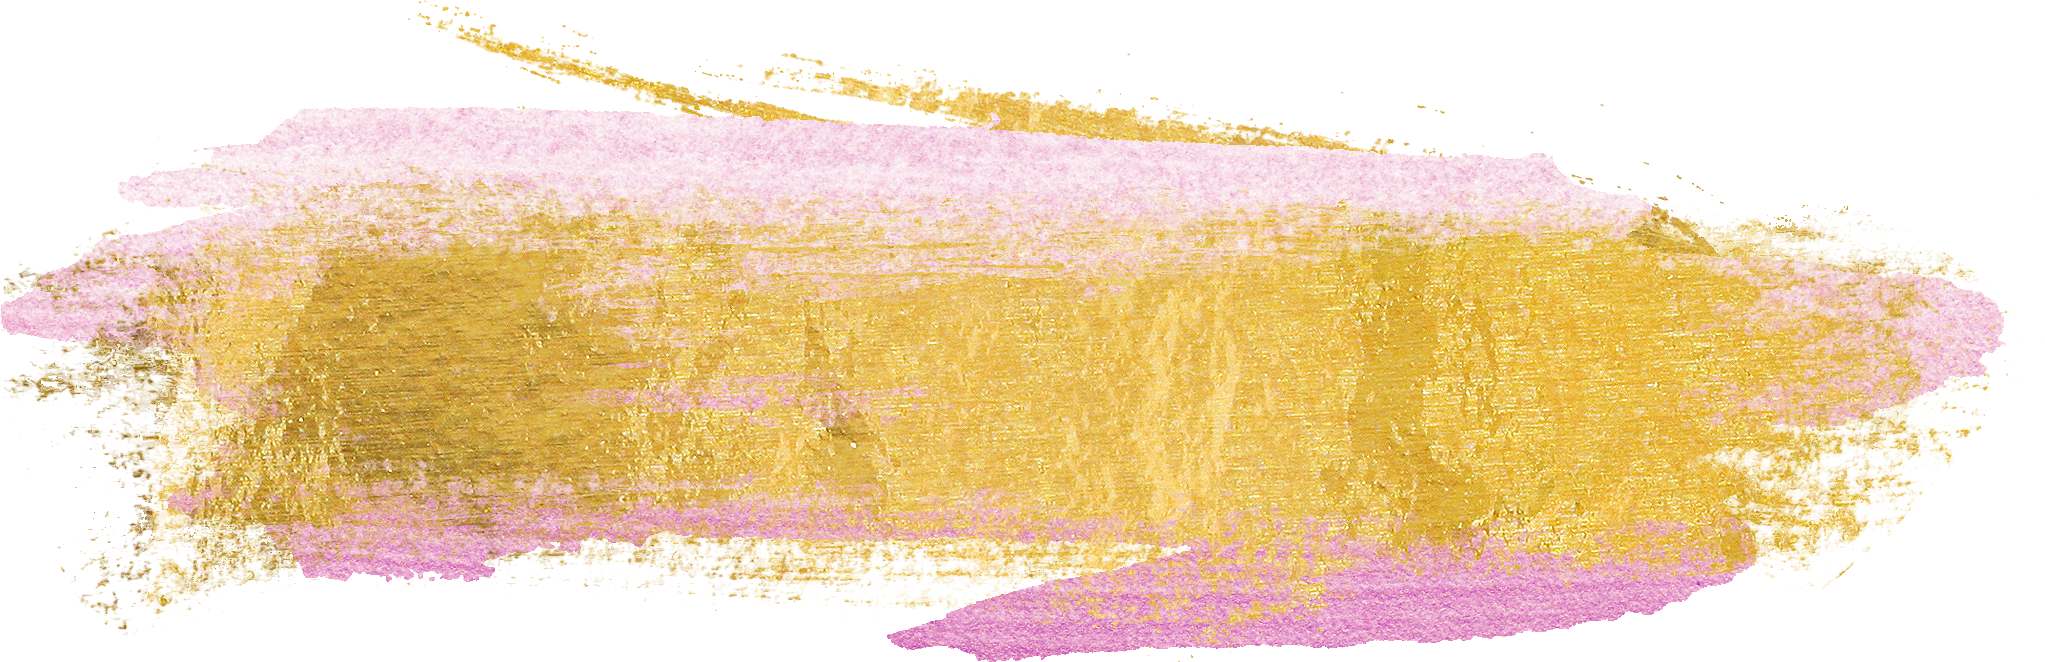 gold-paint-background